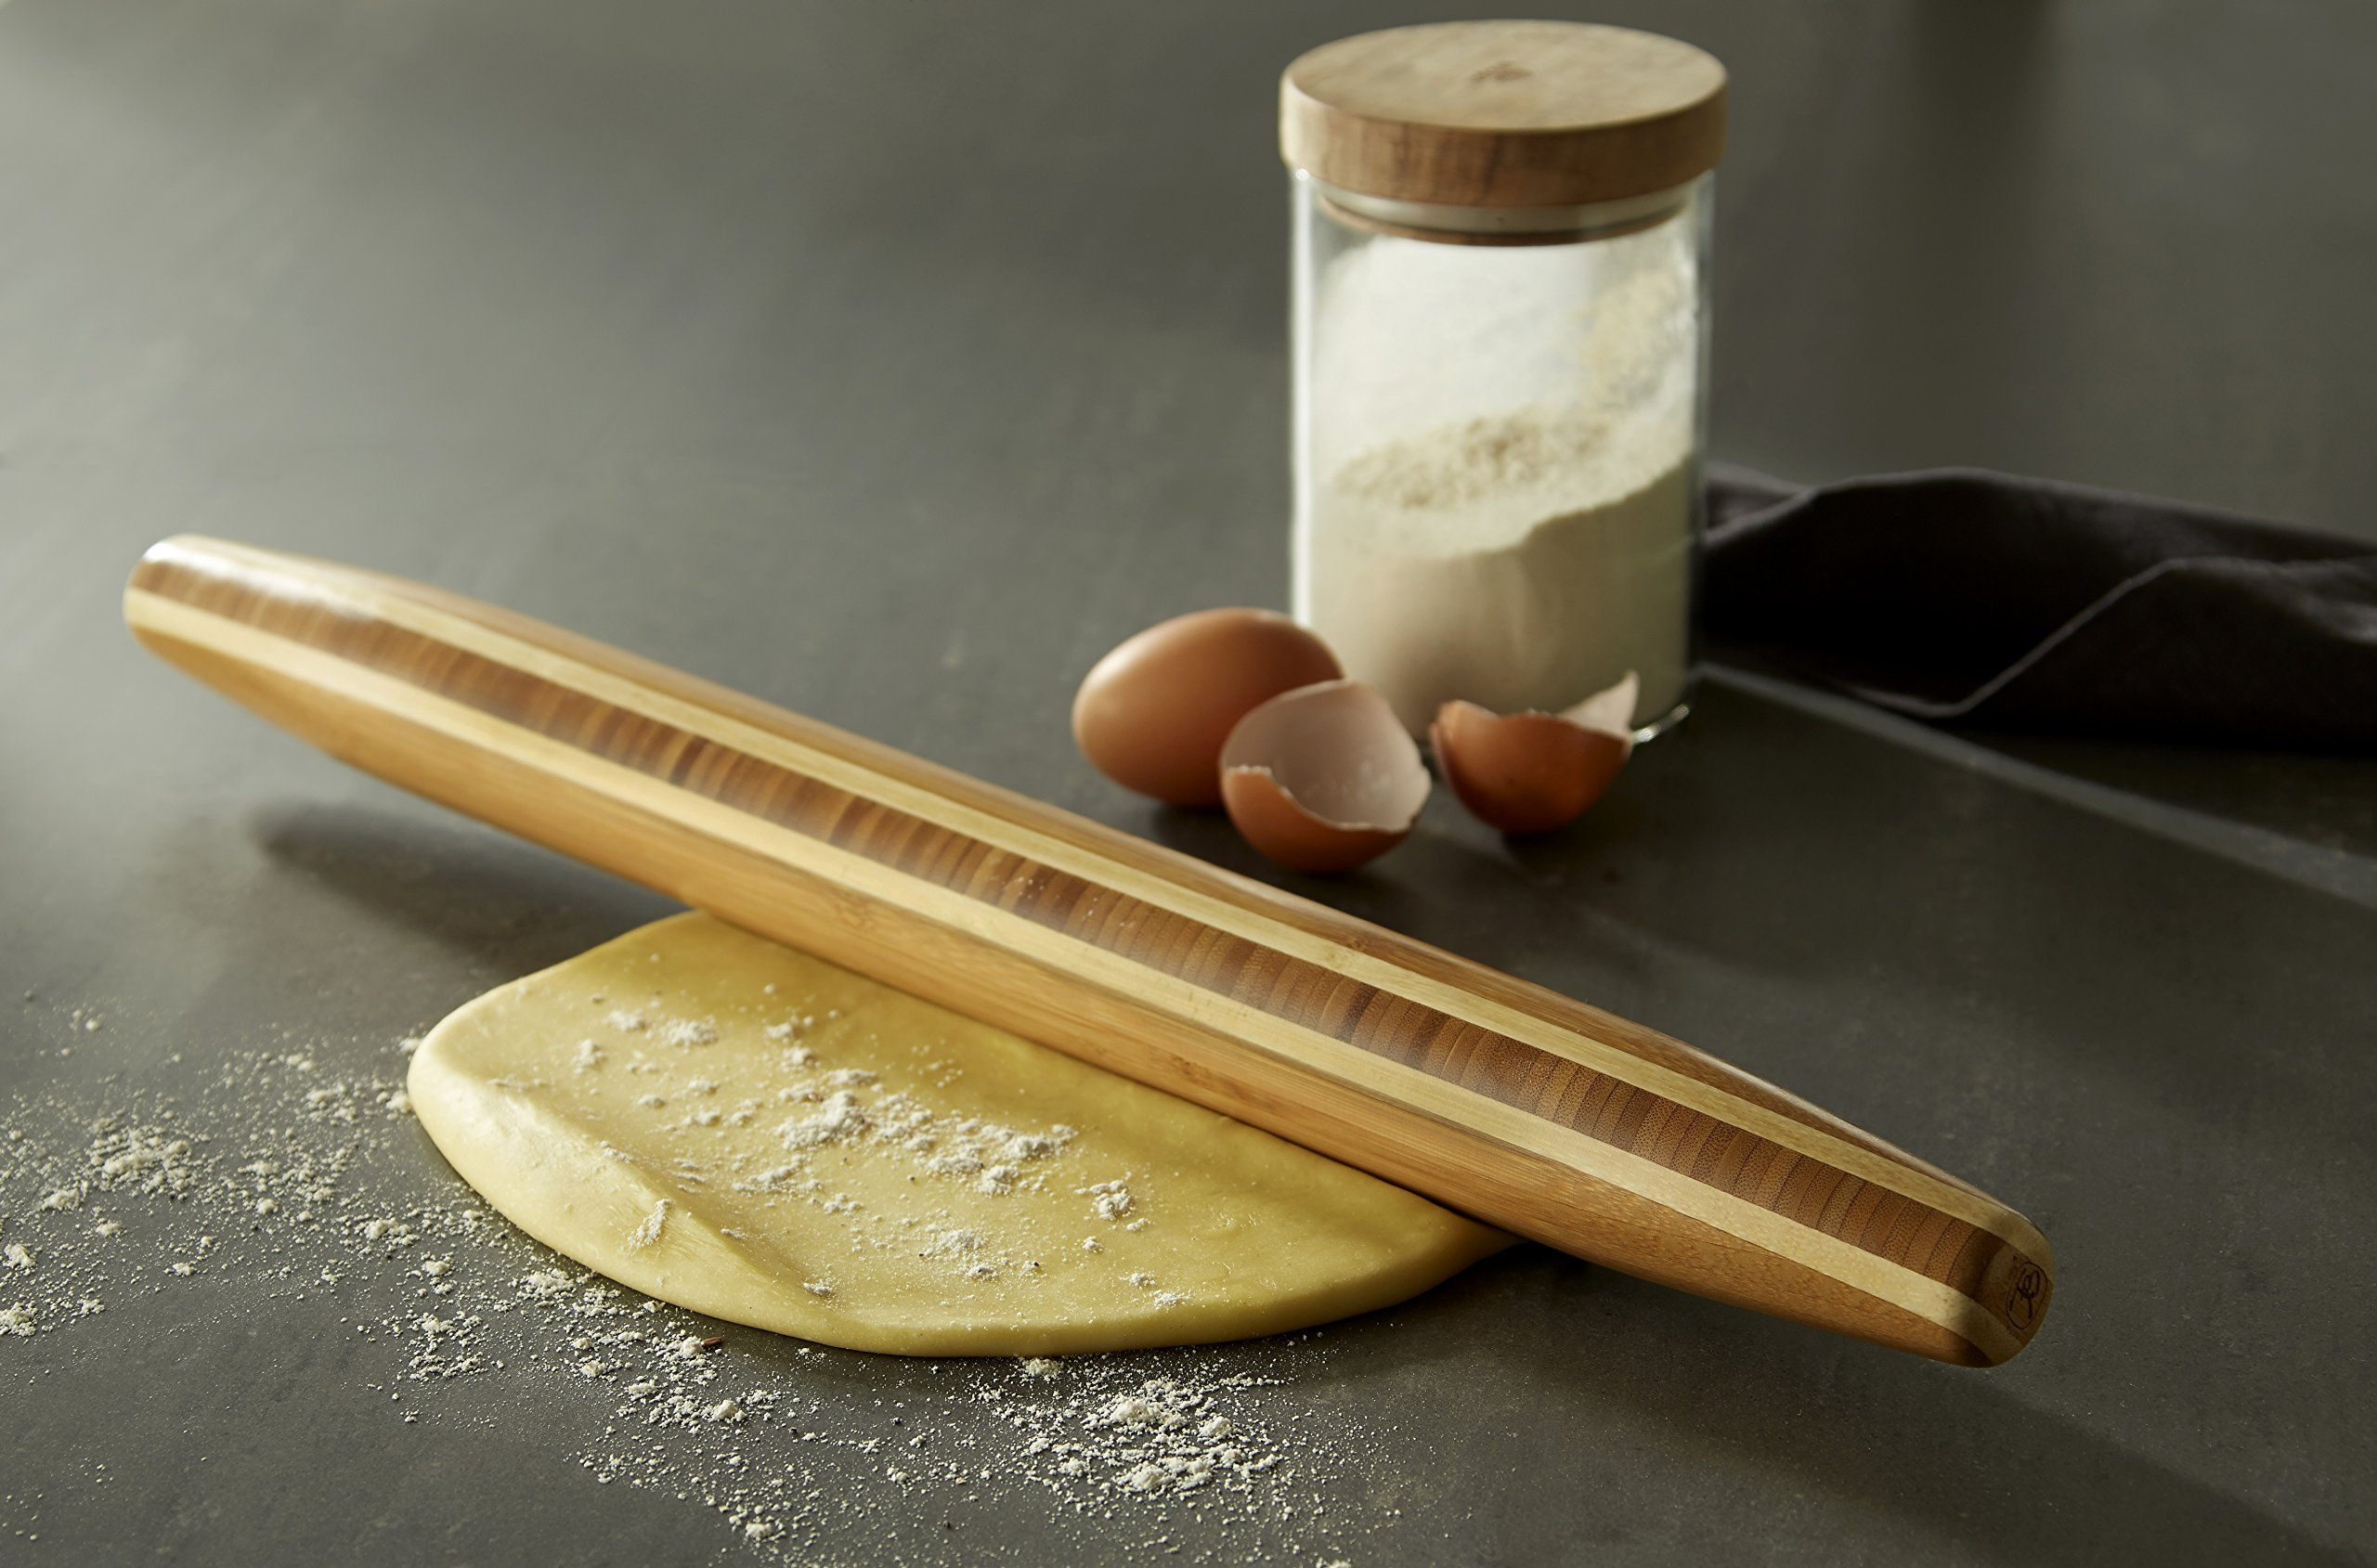 Totally Bamboo Large French Style Tapered Rolling Pin, Beautiful Inlay of Contrasting Color Measuring 20 1/2'' in Length; Made from 100% bamboo; Light, Durable & Super Strong- Perfect for Pastry Making by Totally Bamboo (Image #2)